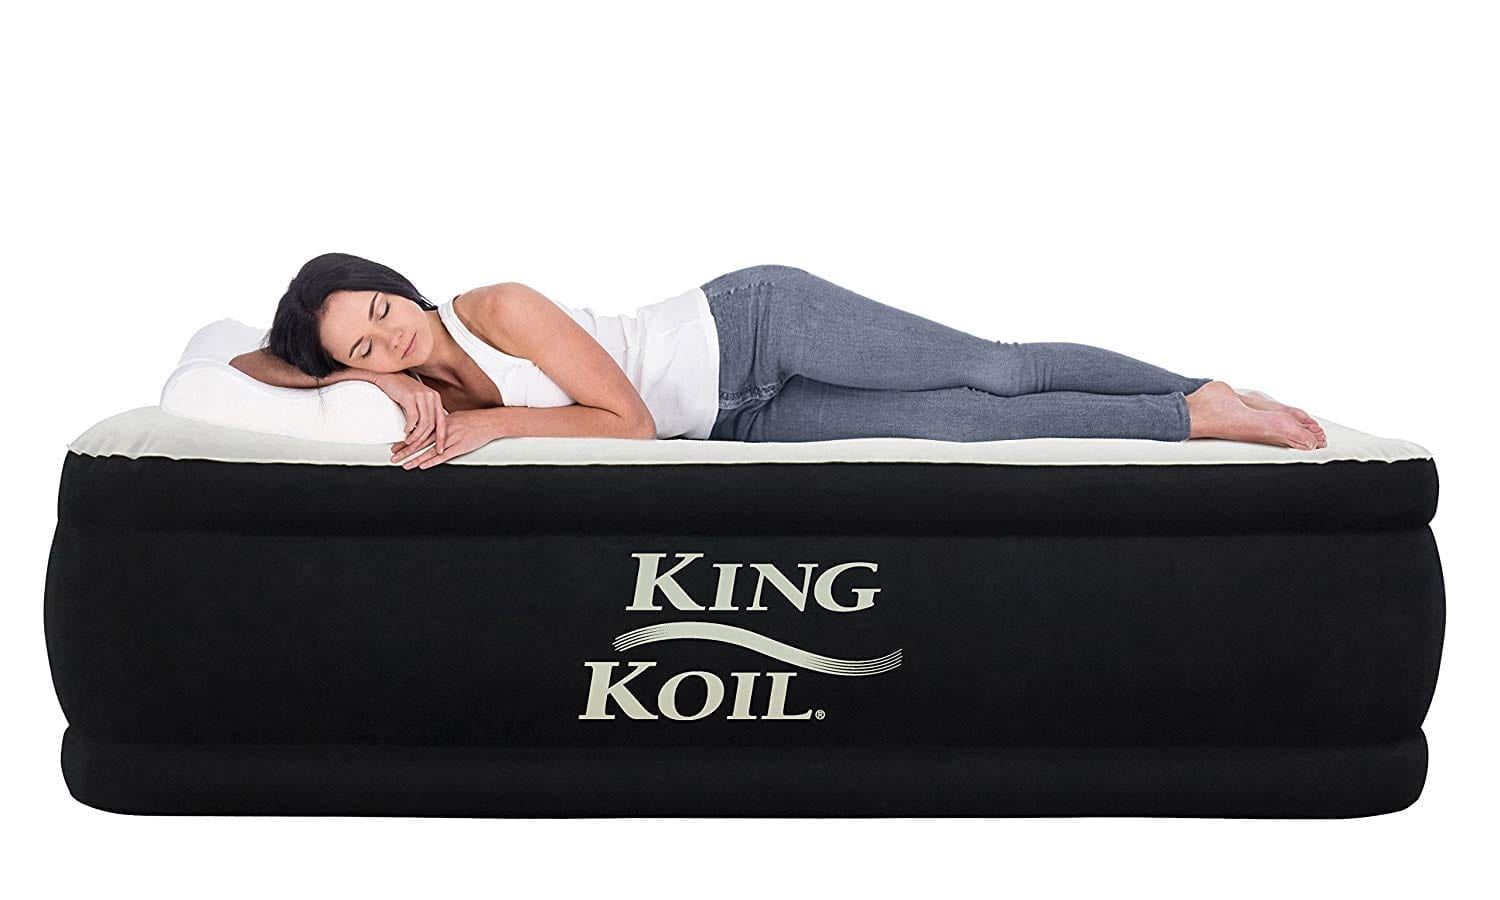 King Koil Raised Airbed (Queen Size)